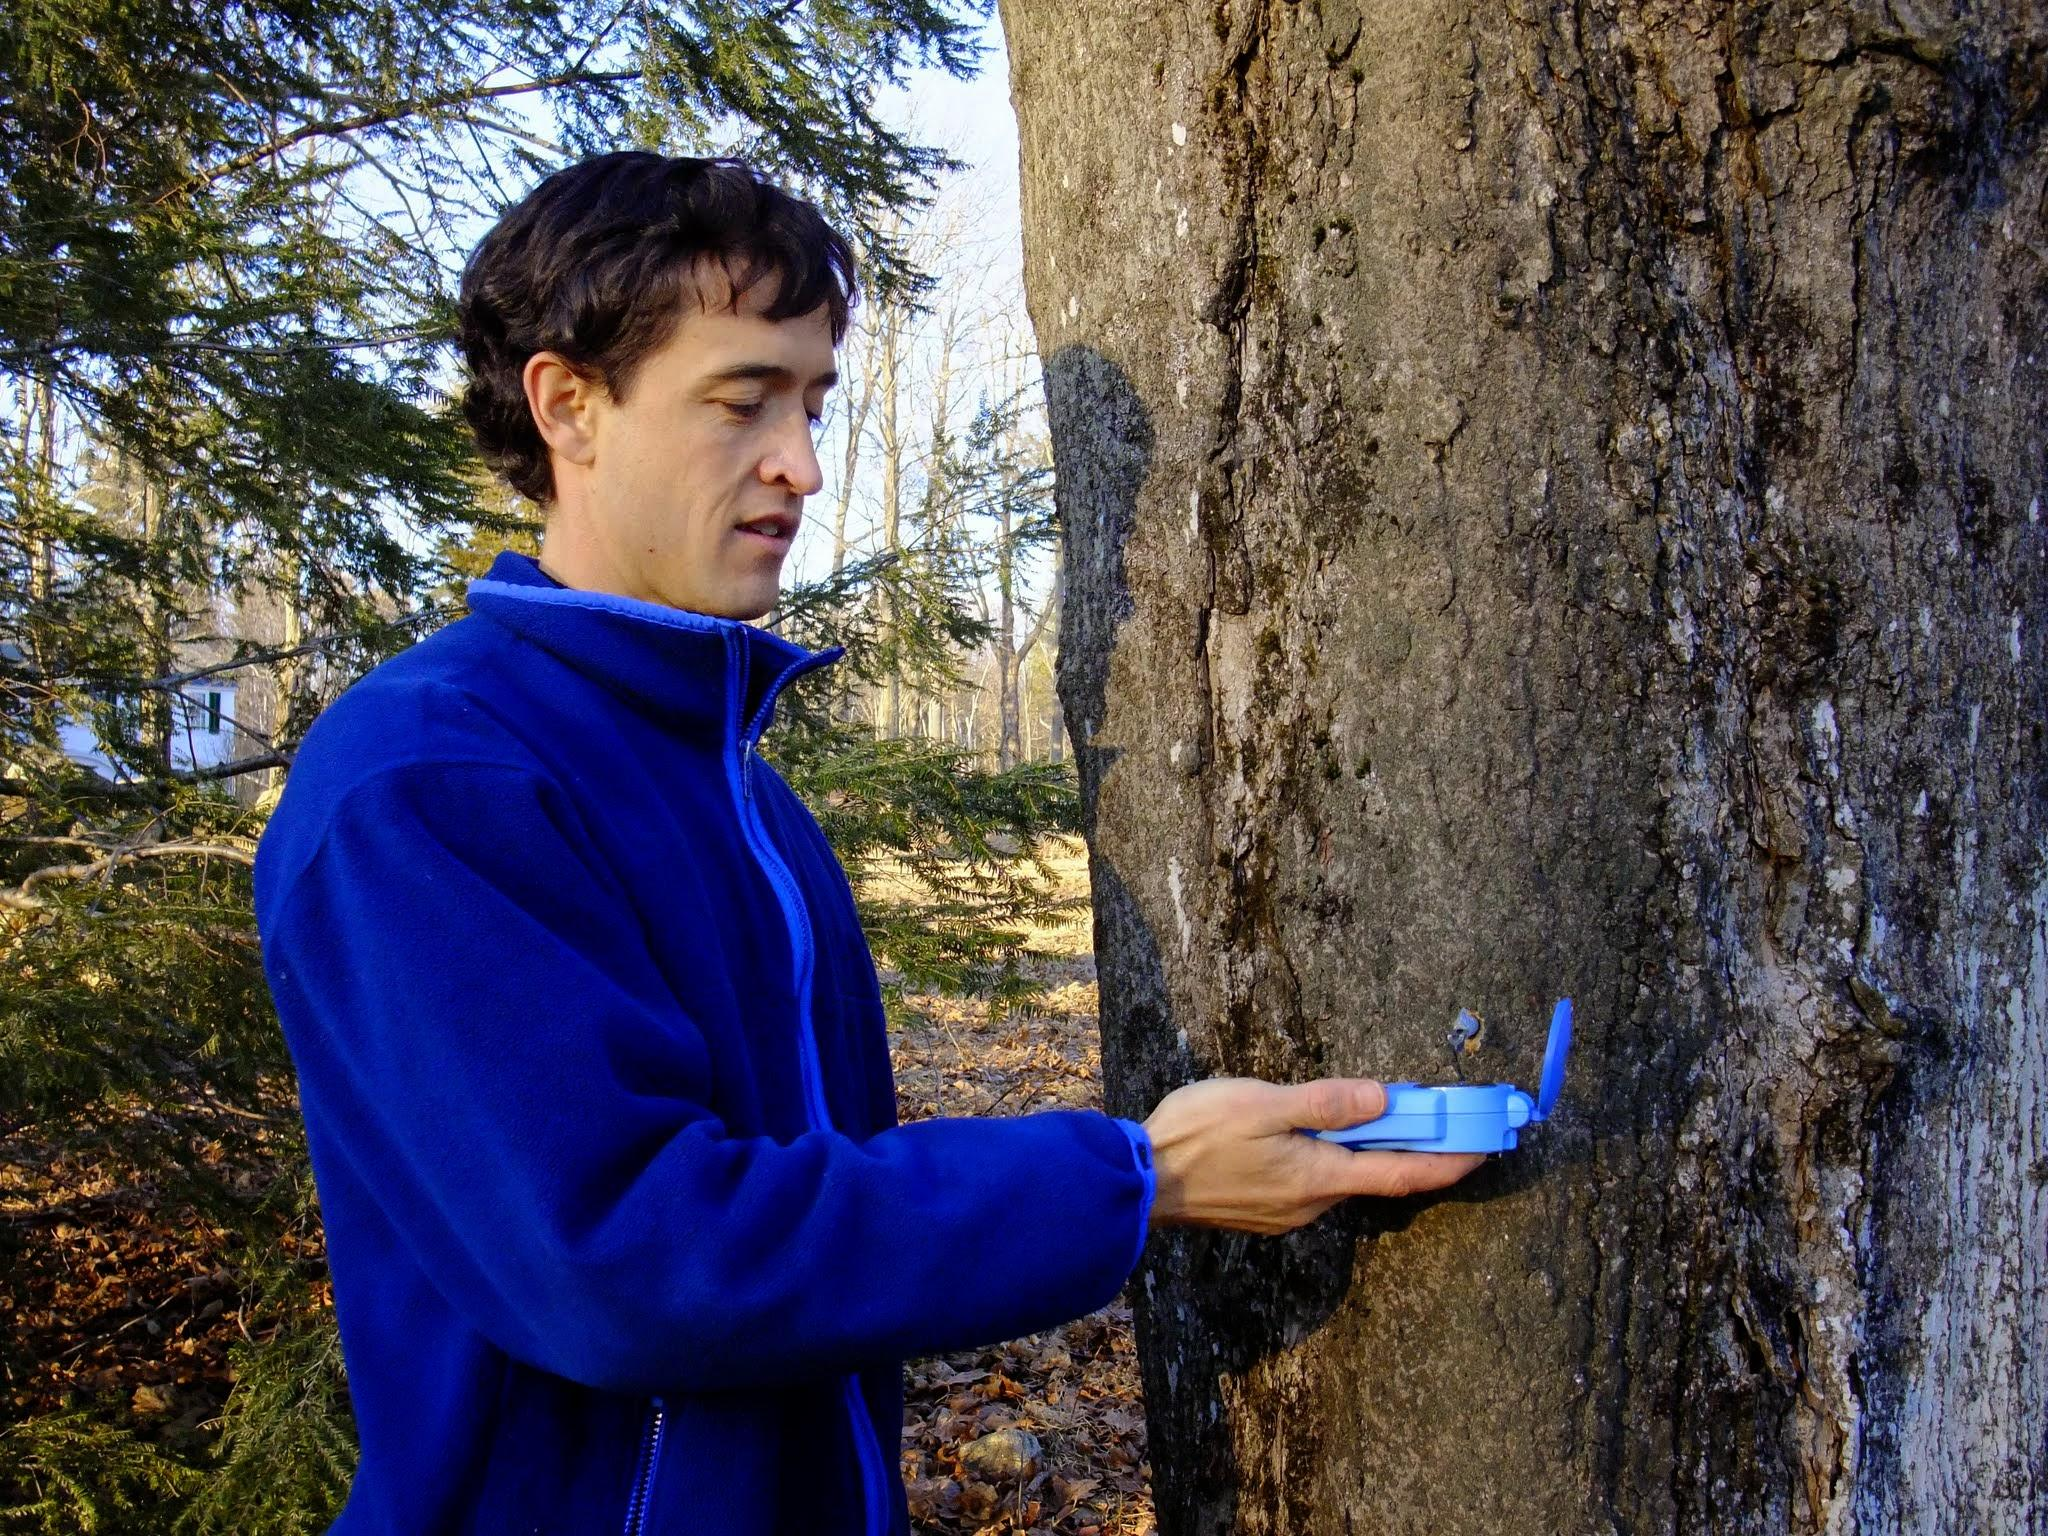 5b296c92767 Ecologist Joshua Rapp measuring the sugar content of sap from a sugar maple  tree in north-central Massachusetts. (Clarisse Hart)